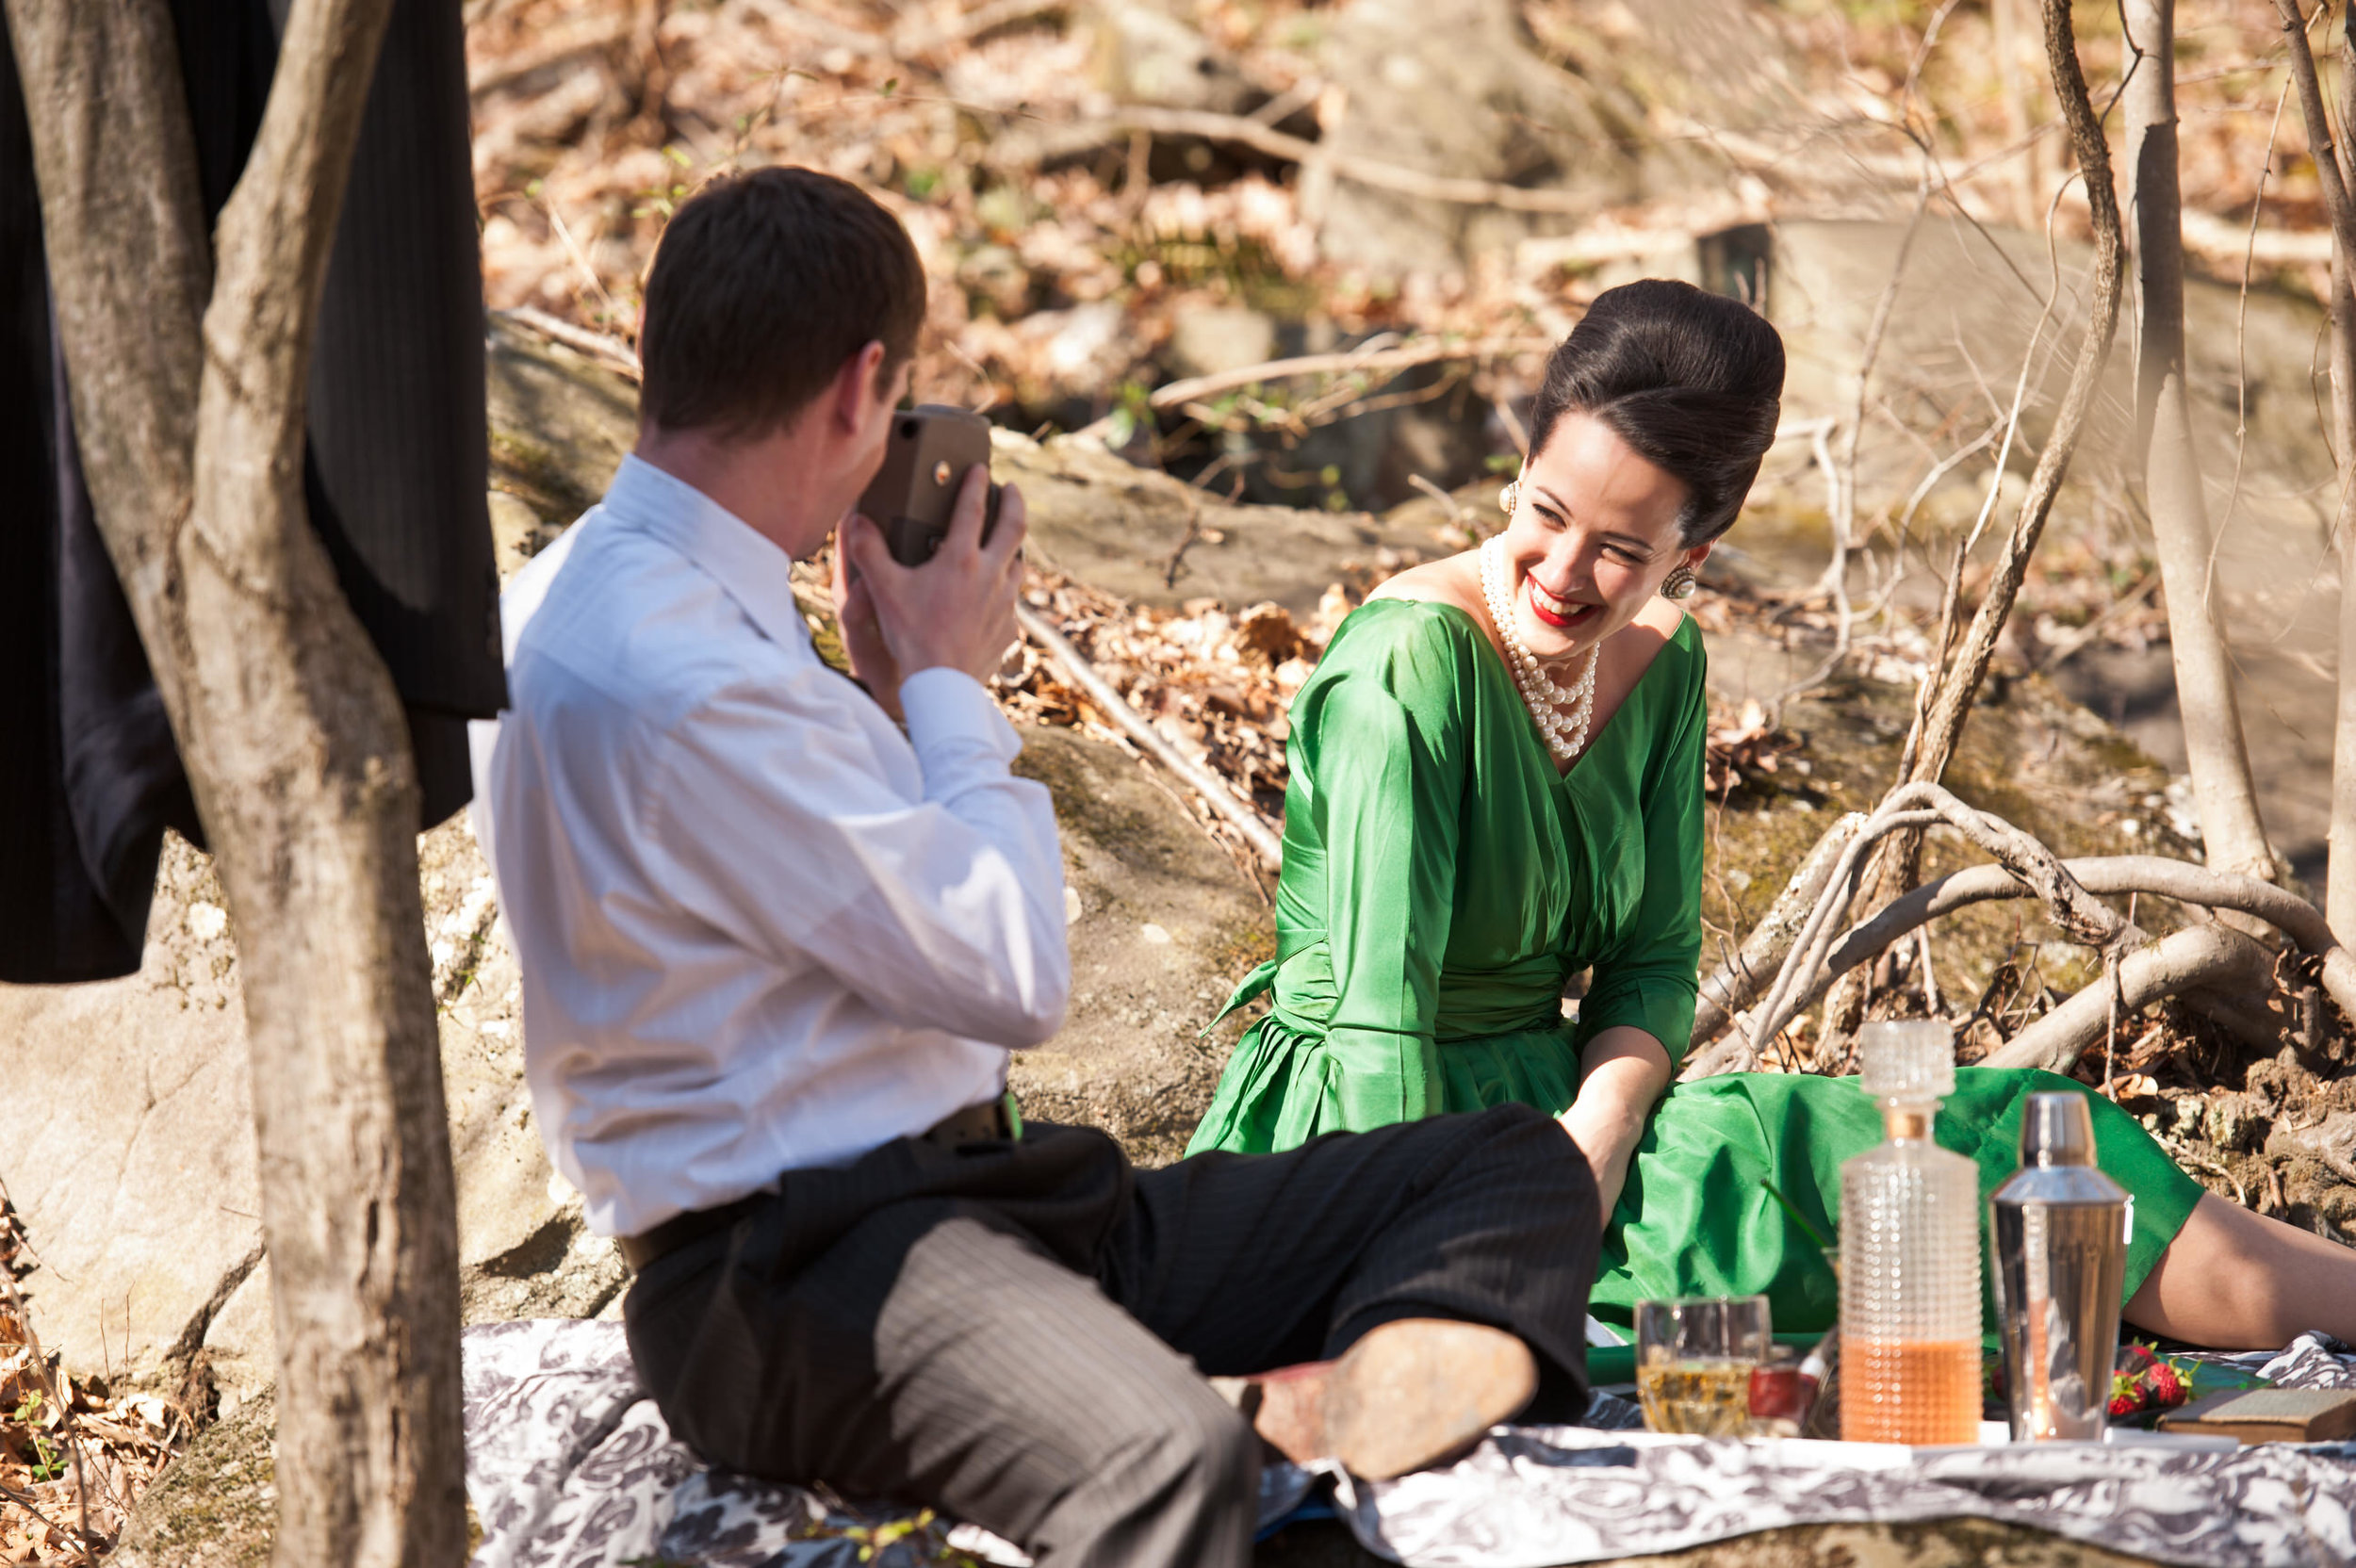 11 Philadelphia Event Planner Picnic in the Woods Mad Men Style.jpg